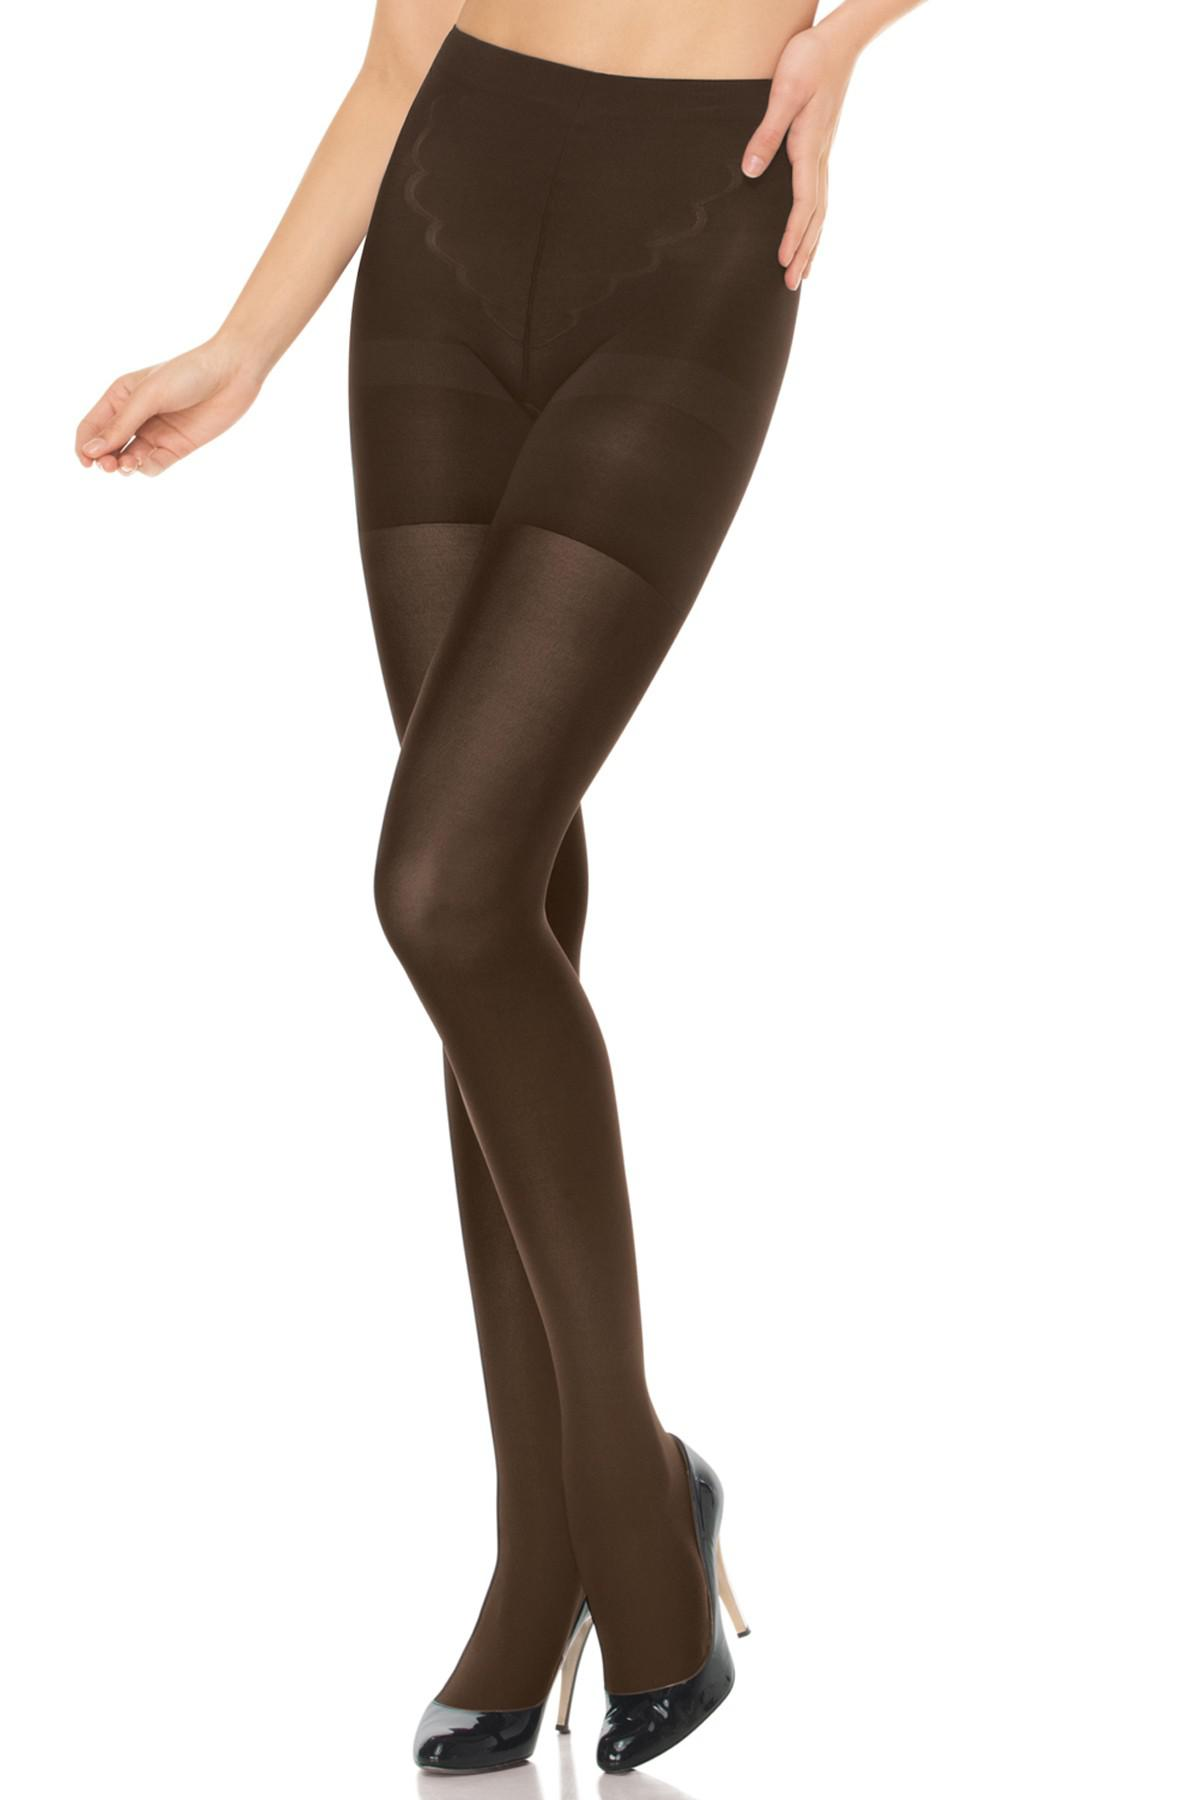 ae13ccd6bae Lyst - Spanx Red Hot Shaping Tights in Brown